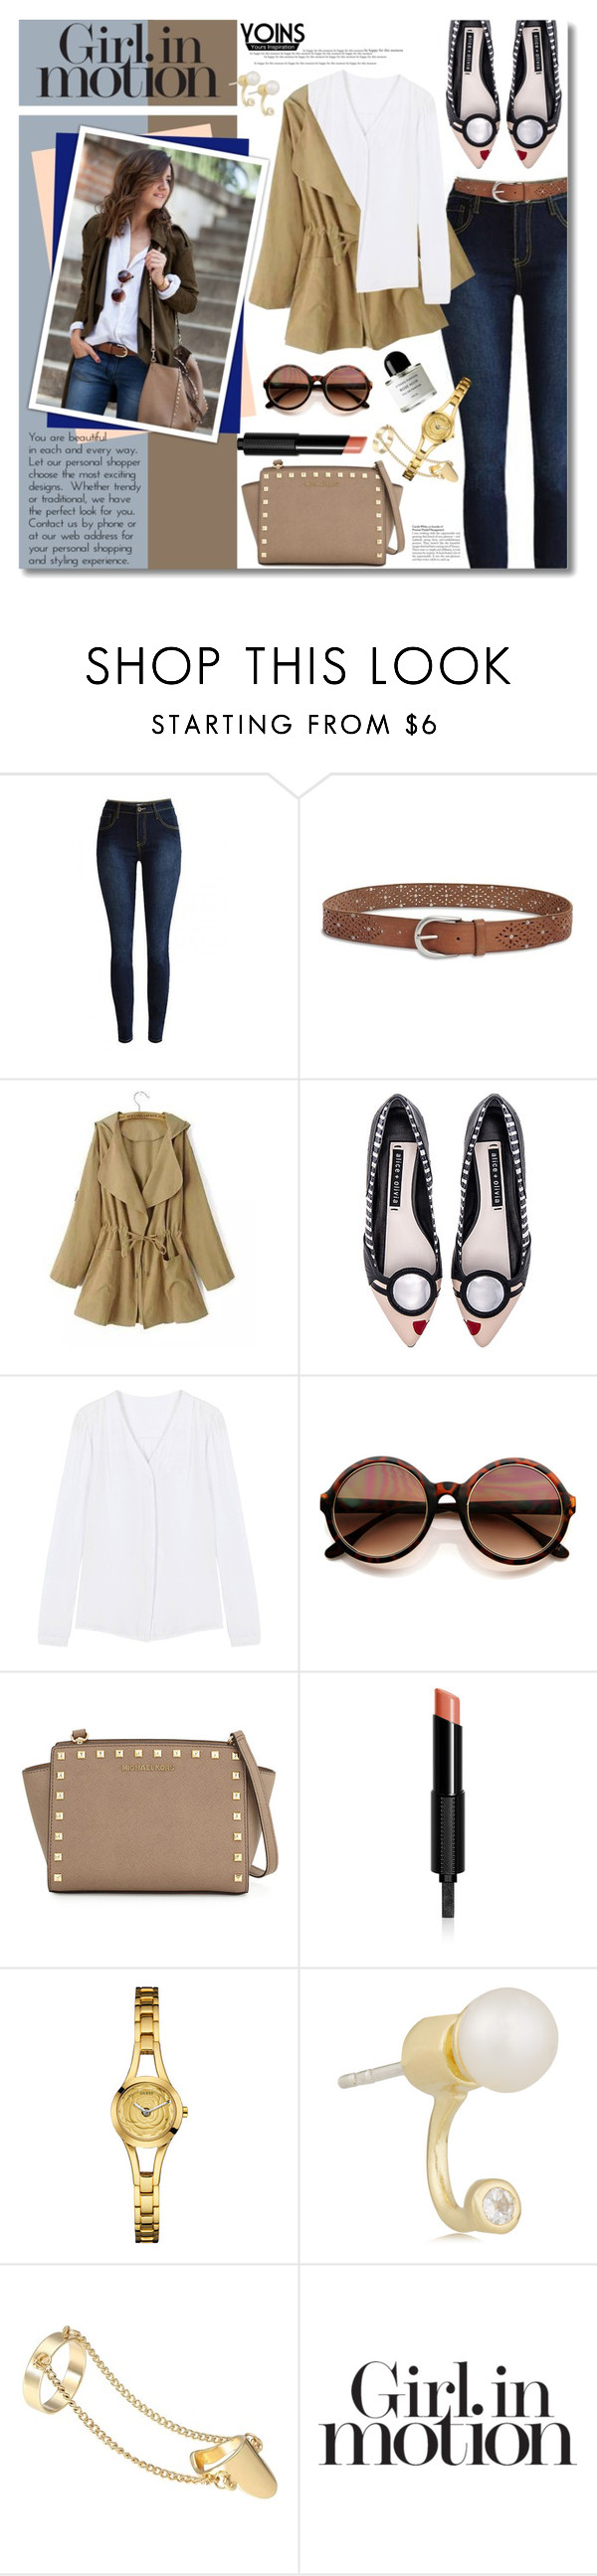 """""""Classic Skinnies Combo"""" by gorgeautiful ❤ liked on Polyvore featuring Lucky Brand, Alice + Olivia, MICHAEL Michael Kors, Givenchy, GUESS, Pamela Love, Victoria's Secret, Byredo, yoins and yoinscollection"""